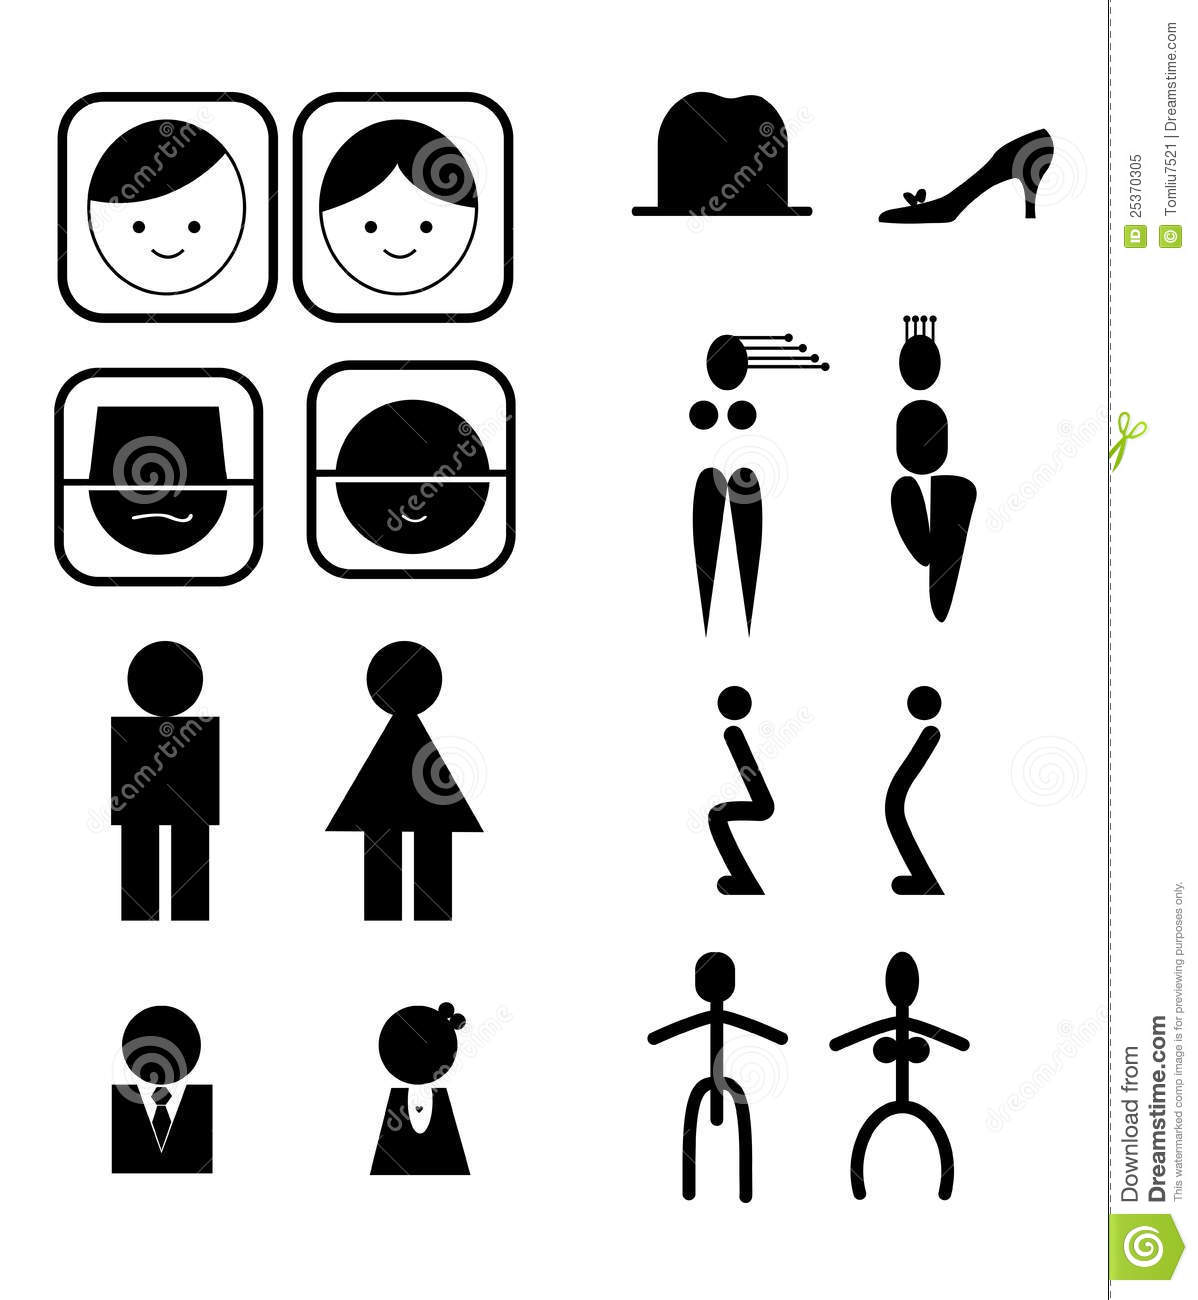 Toilet icons stock vector. Image of hygiene, room, rest